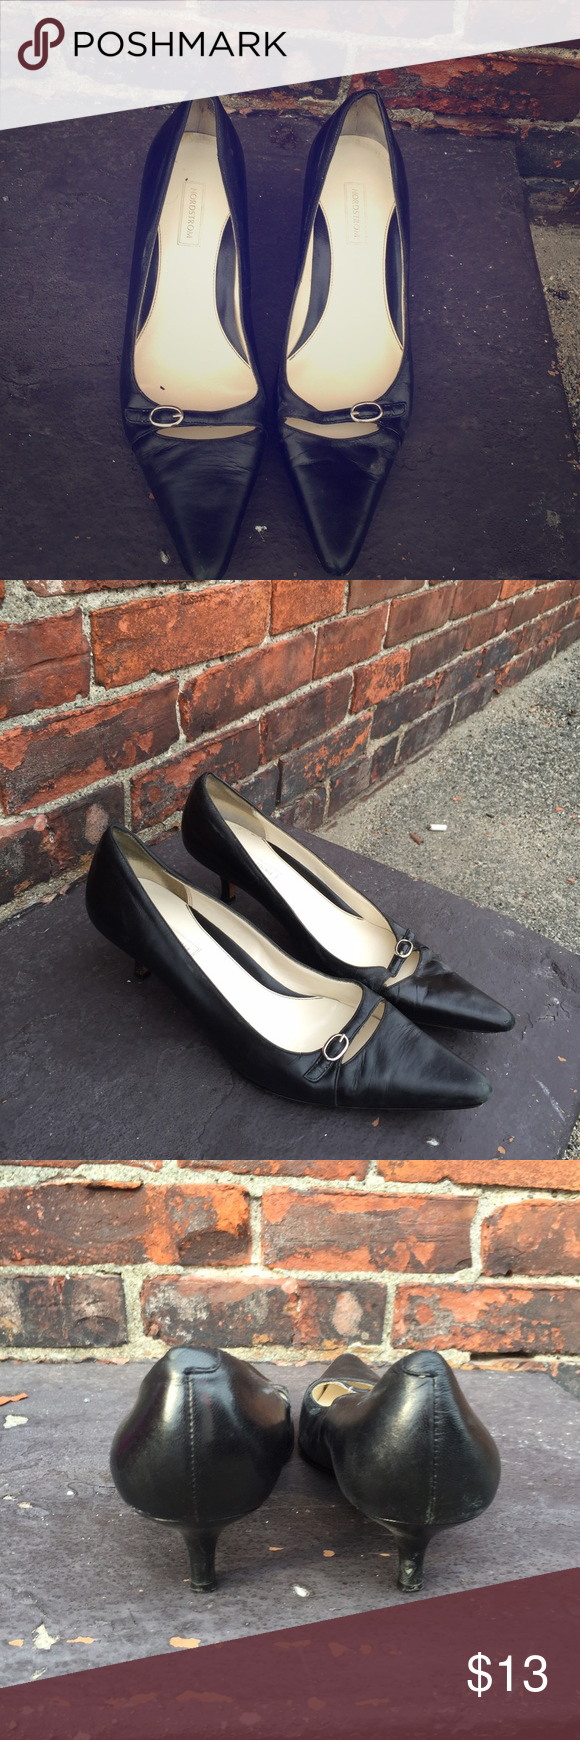 Nordstrom Black Pointed Toe Mini Heels Genuine Leather Upper, Leather Sole pointed toe heels. Comfortable and Perfect for the Office. Nordstrom Shoes Heels